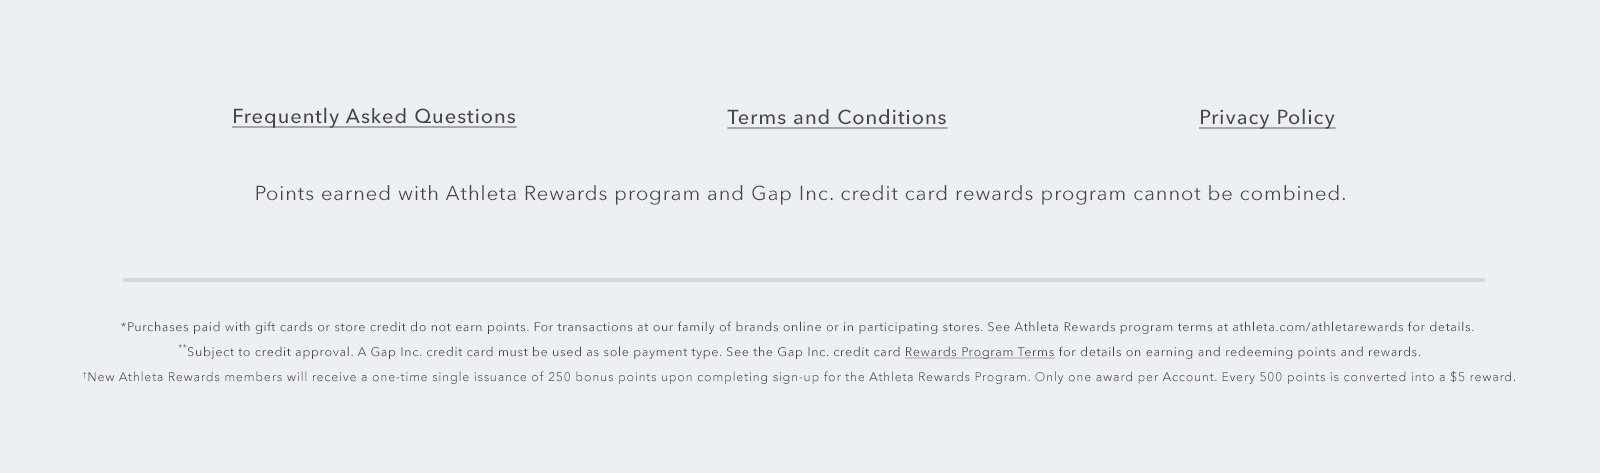 Brand logos - points earned with Athleta Rewards program and Gap Inc. credit card rewards program cannot be combined. *Purchases paid with gift cards or store credit do not earn points. For transactions at our family of brands online or in participating stores. See Athleta Rewards program terms and athleta.com/athletarewards for details. **Subject to credit approval. A Gap Inc. credit card must be used as sole payment type. See the Gap Inc. credit card Rewards Program terms for details on earning and redeeming points and rewards. ***New Athleta Rewards members will receive a one-time single issuance of 250 bonus points upon completing sign-up for the Athleta Rewards Program. ONly one award per Account. Every 500 points is converted into a $5 reward.